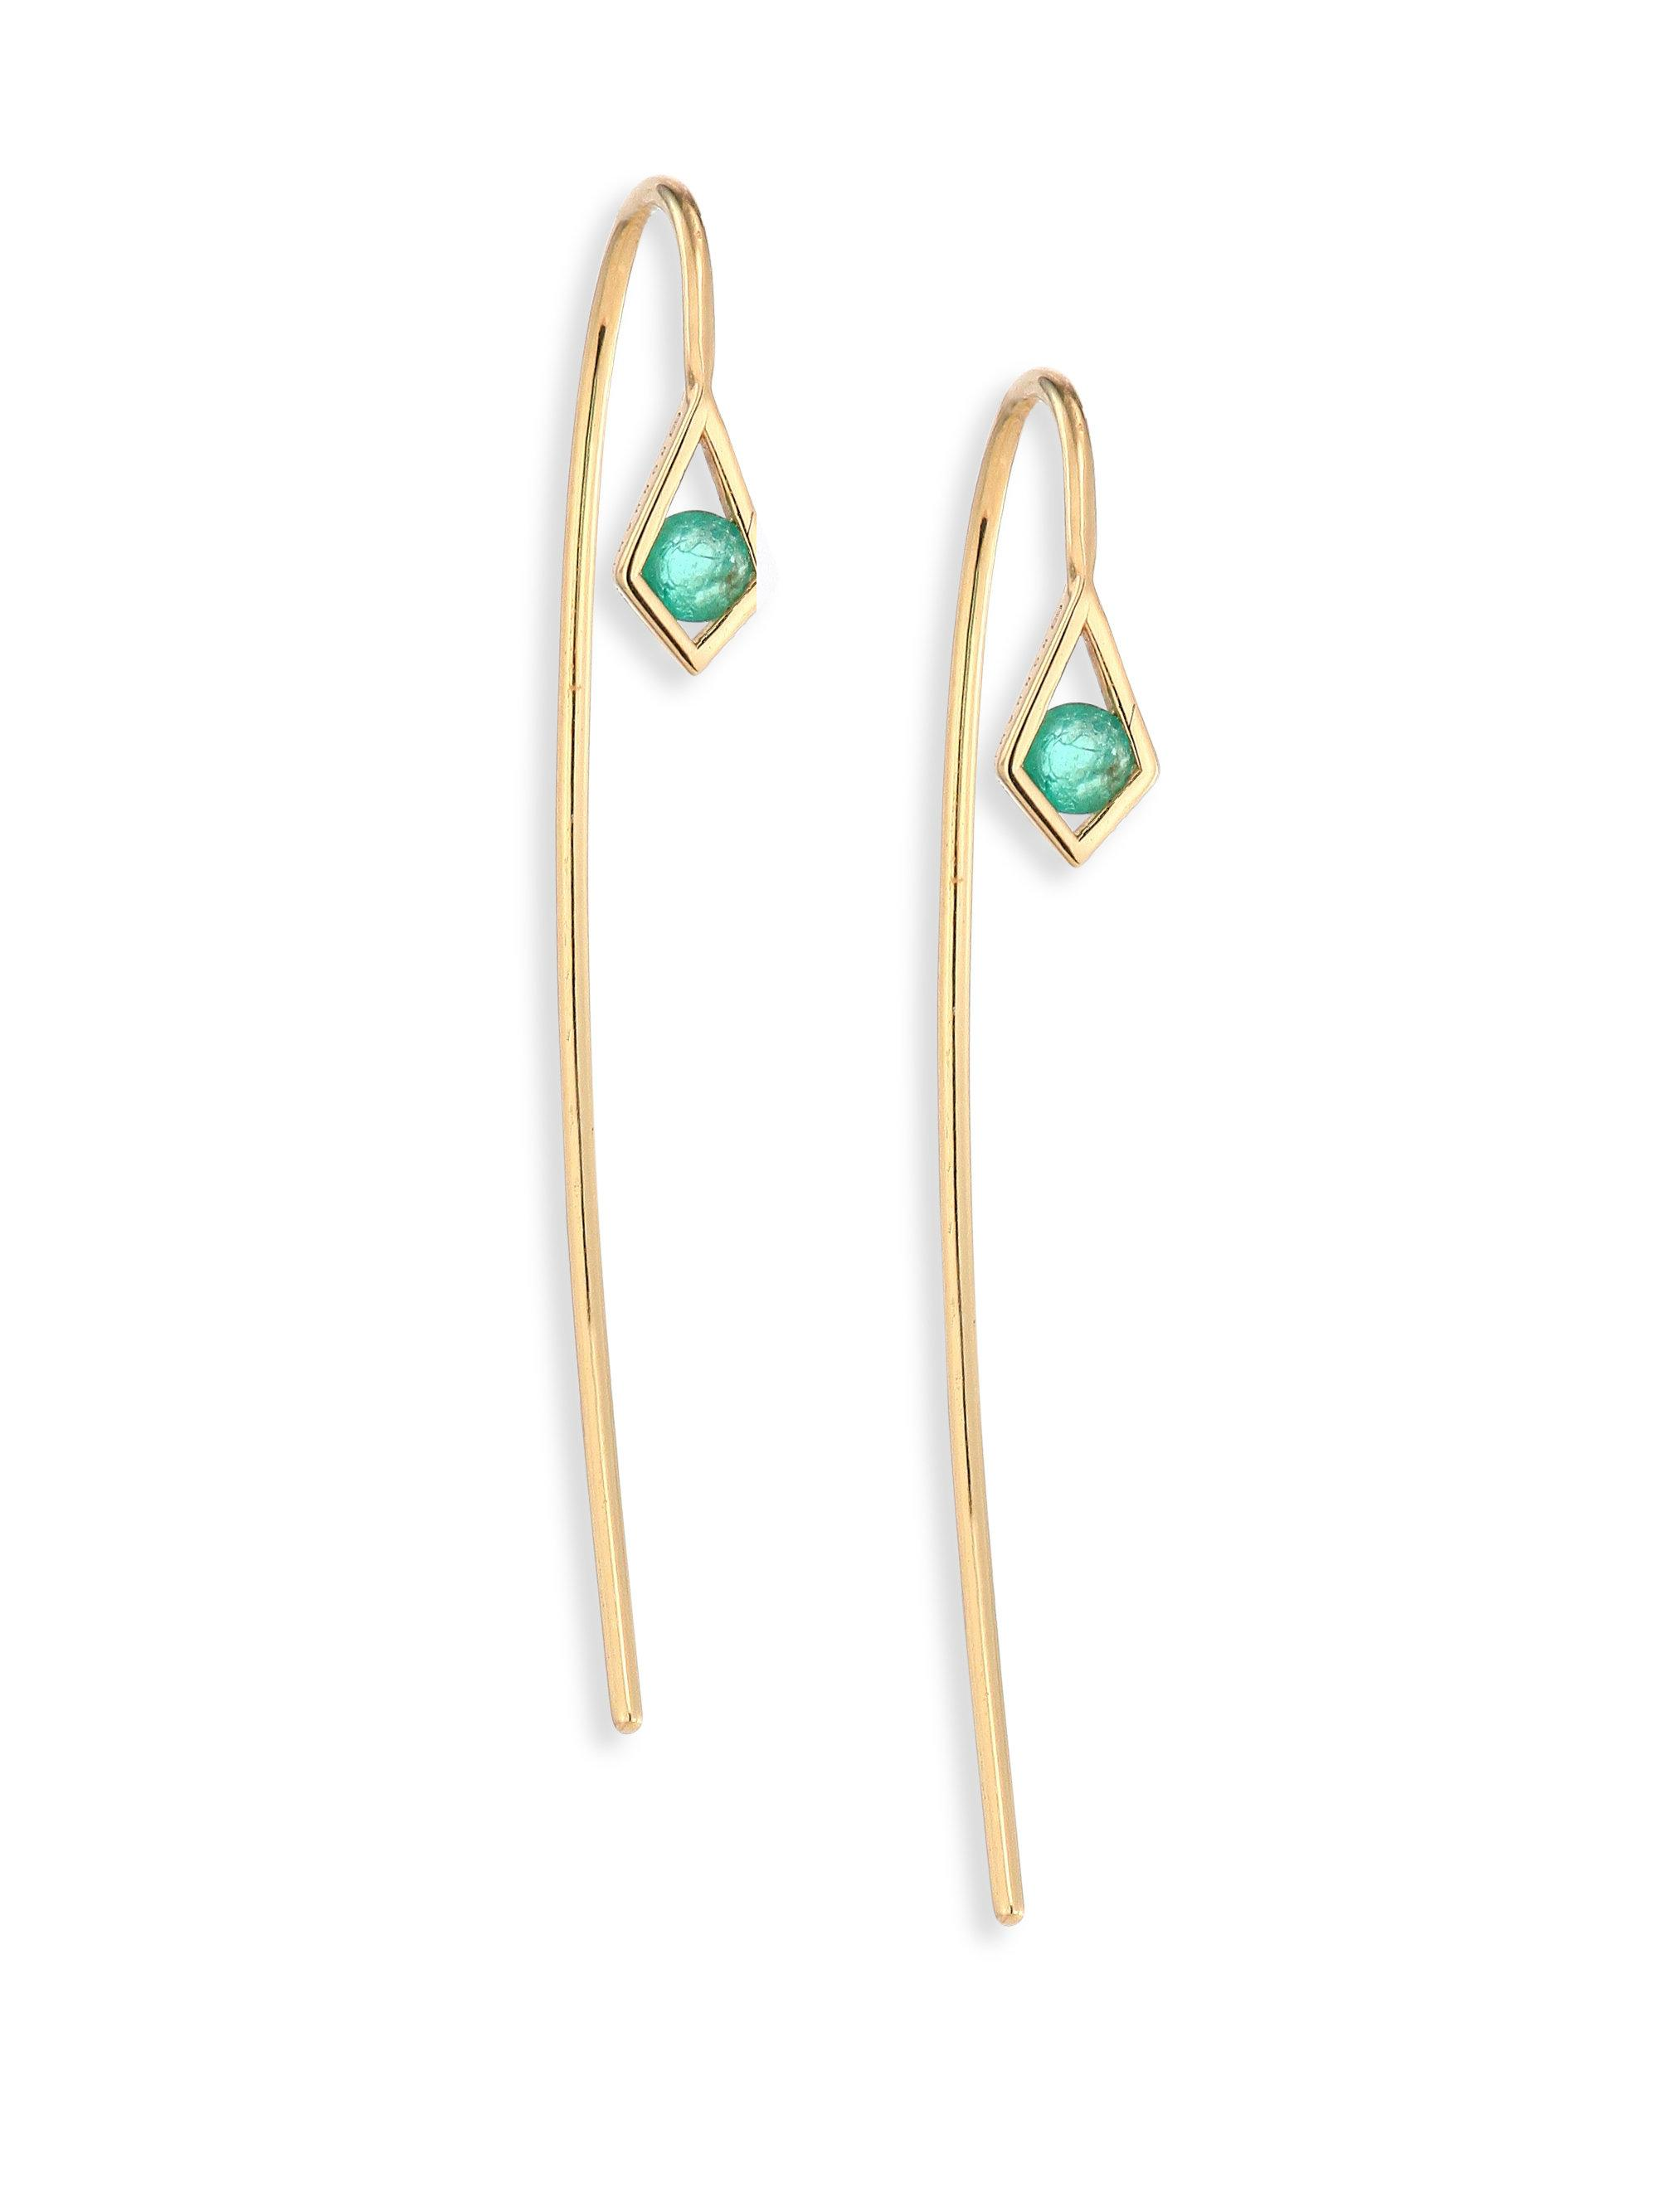 Ron Hami 14k Turquoise & Diamond Threader Earrings qXxMp